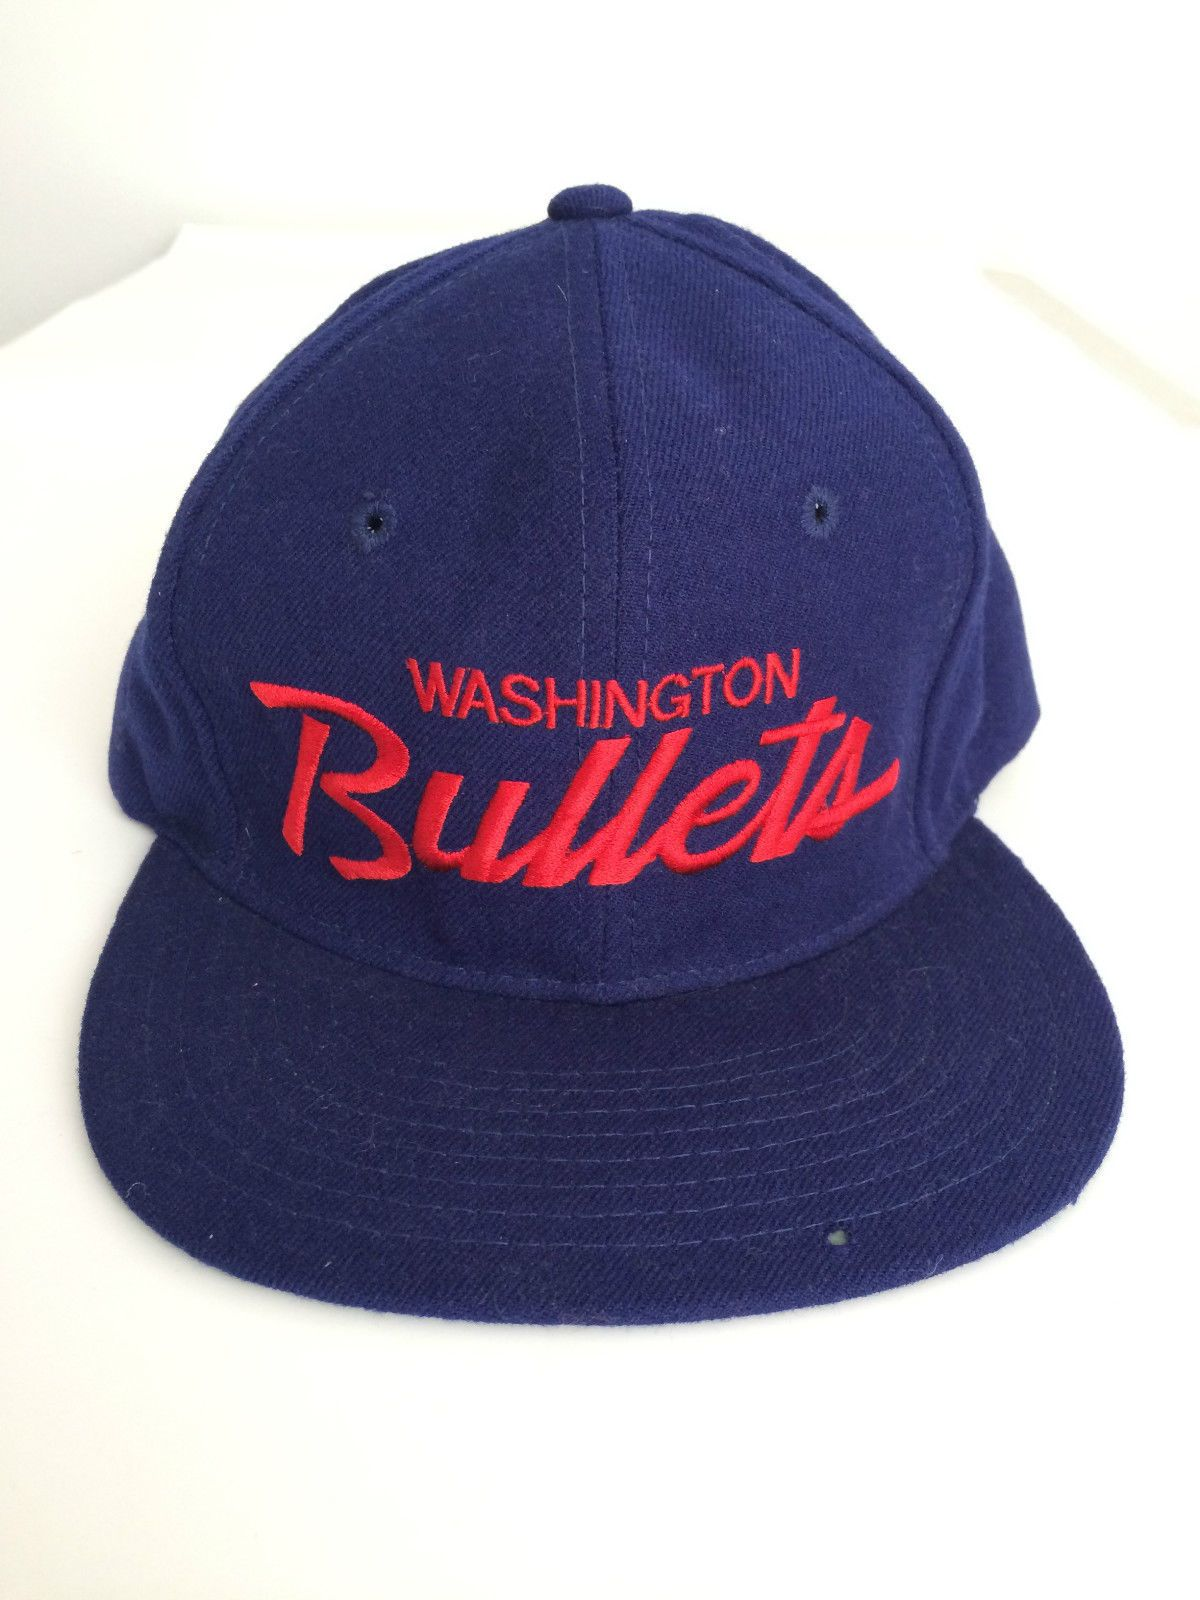 850eaa449 Washington Bullets Vintage Snapback Hat Cap Script Writing Over 20 Years  Old